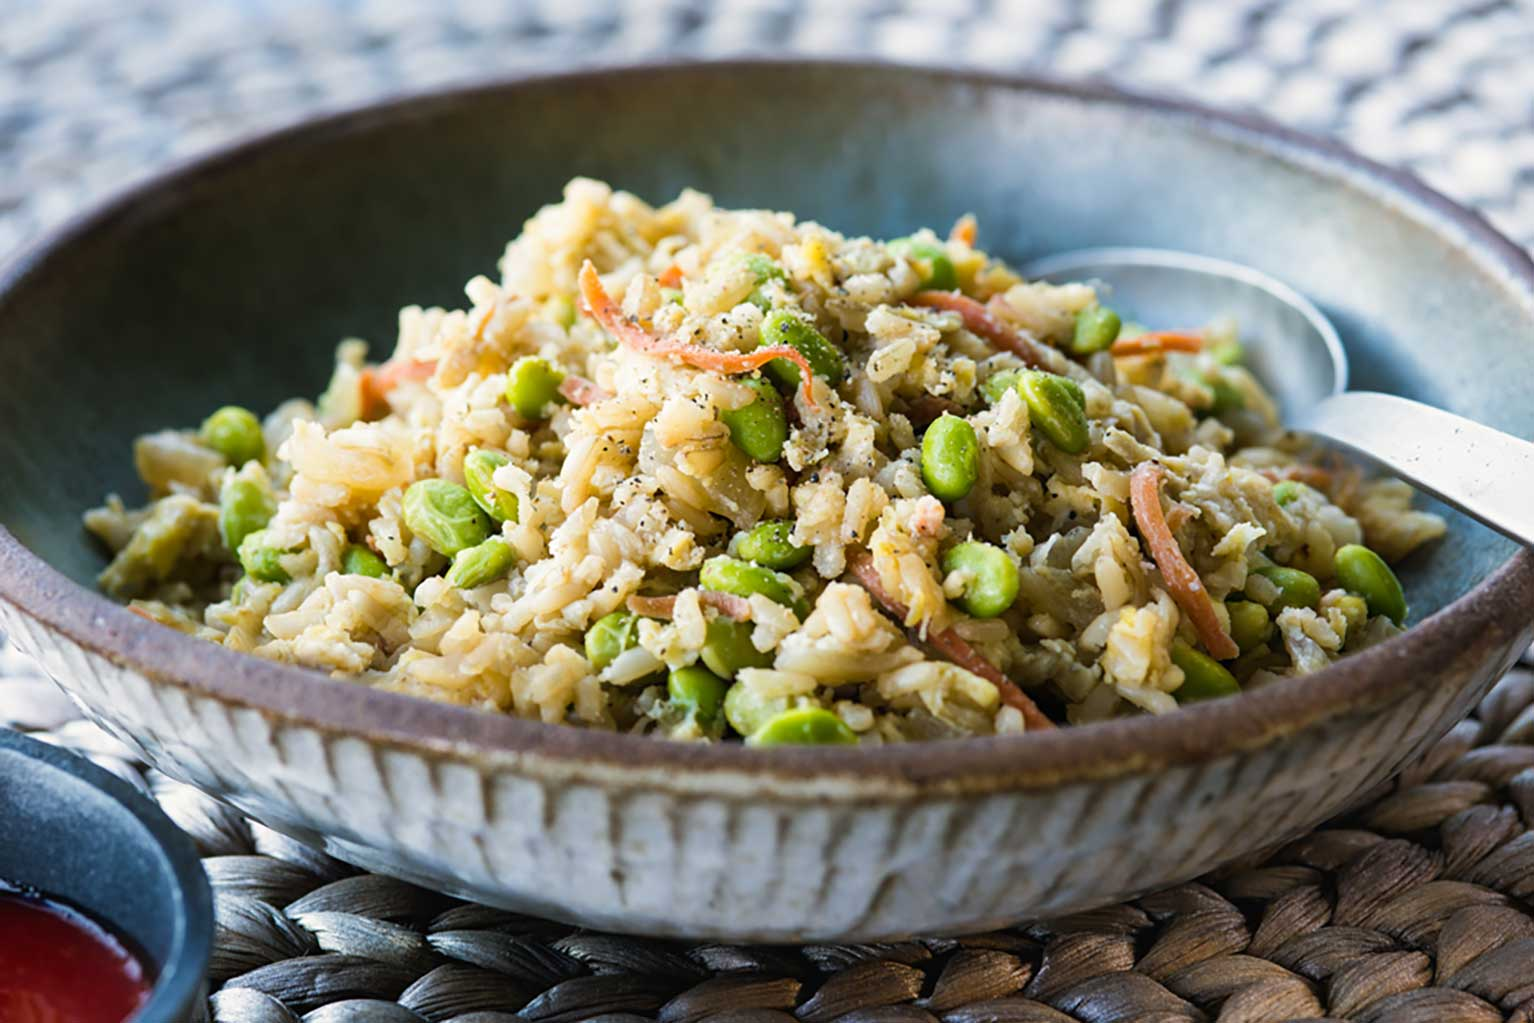 Savory-edamame-fried-rice-in-a-ceramic-bowl